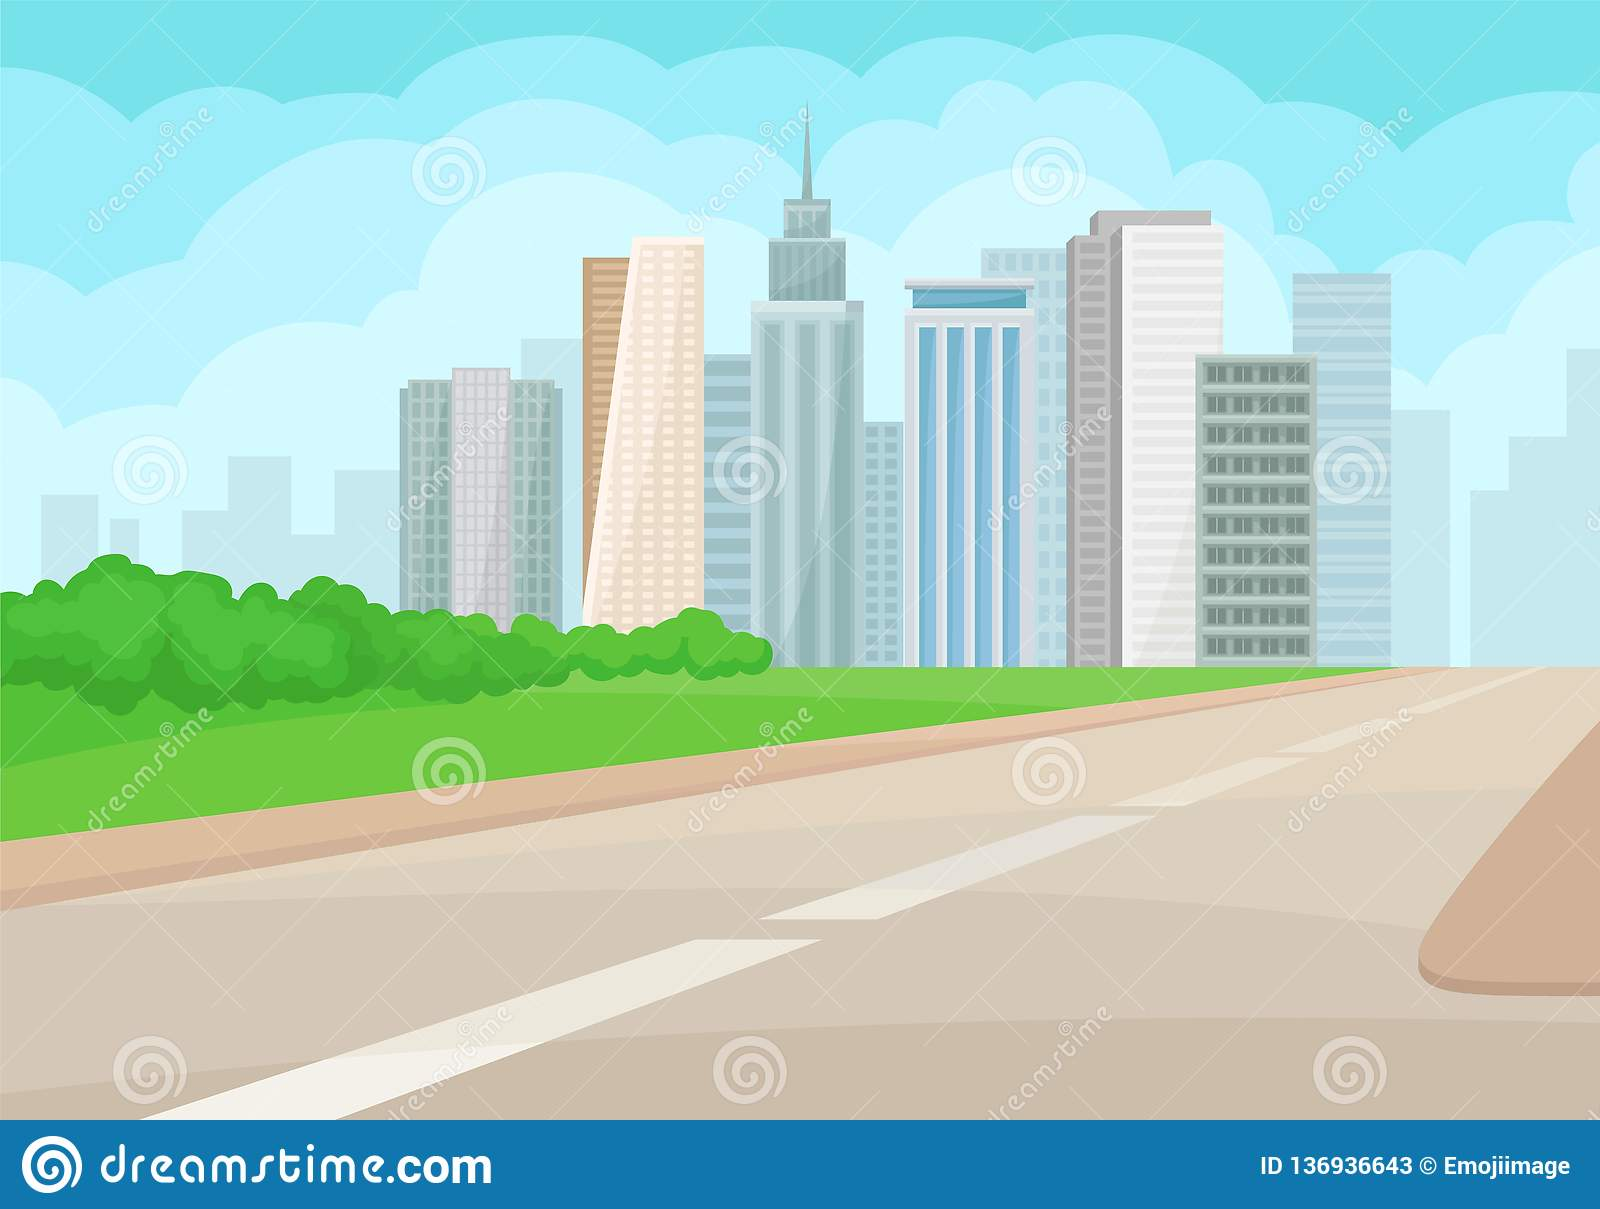 urban landscape with road, high-rise buildings, green